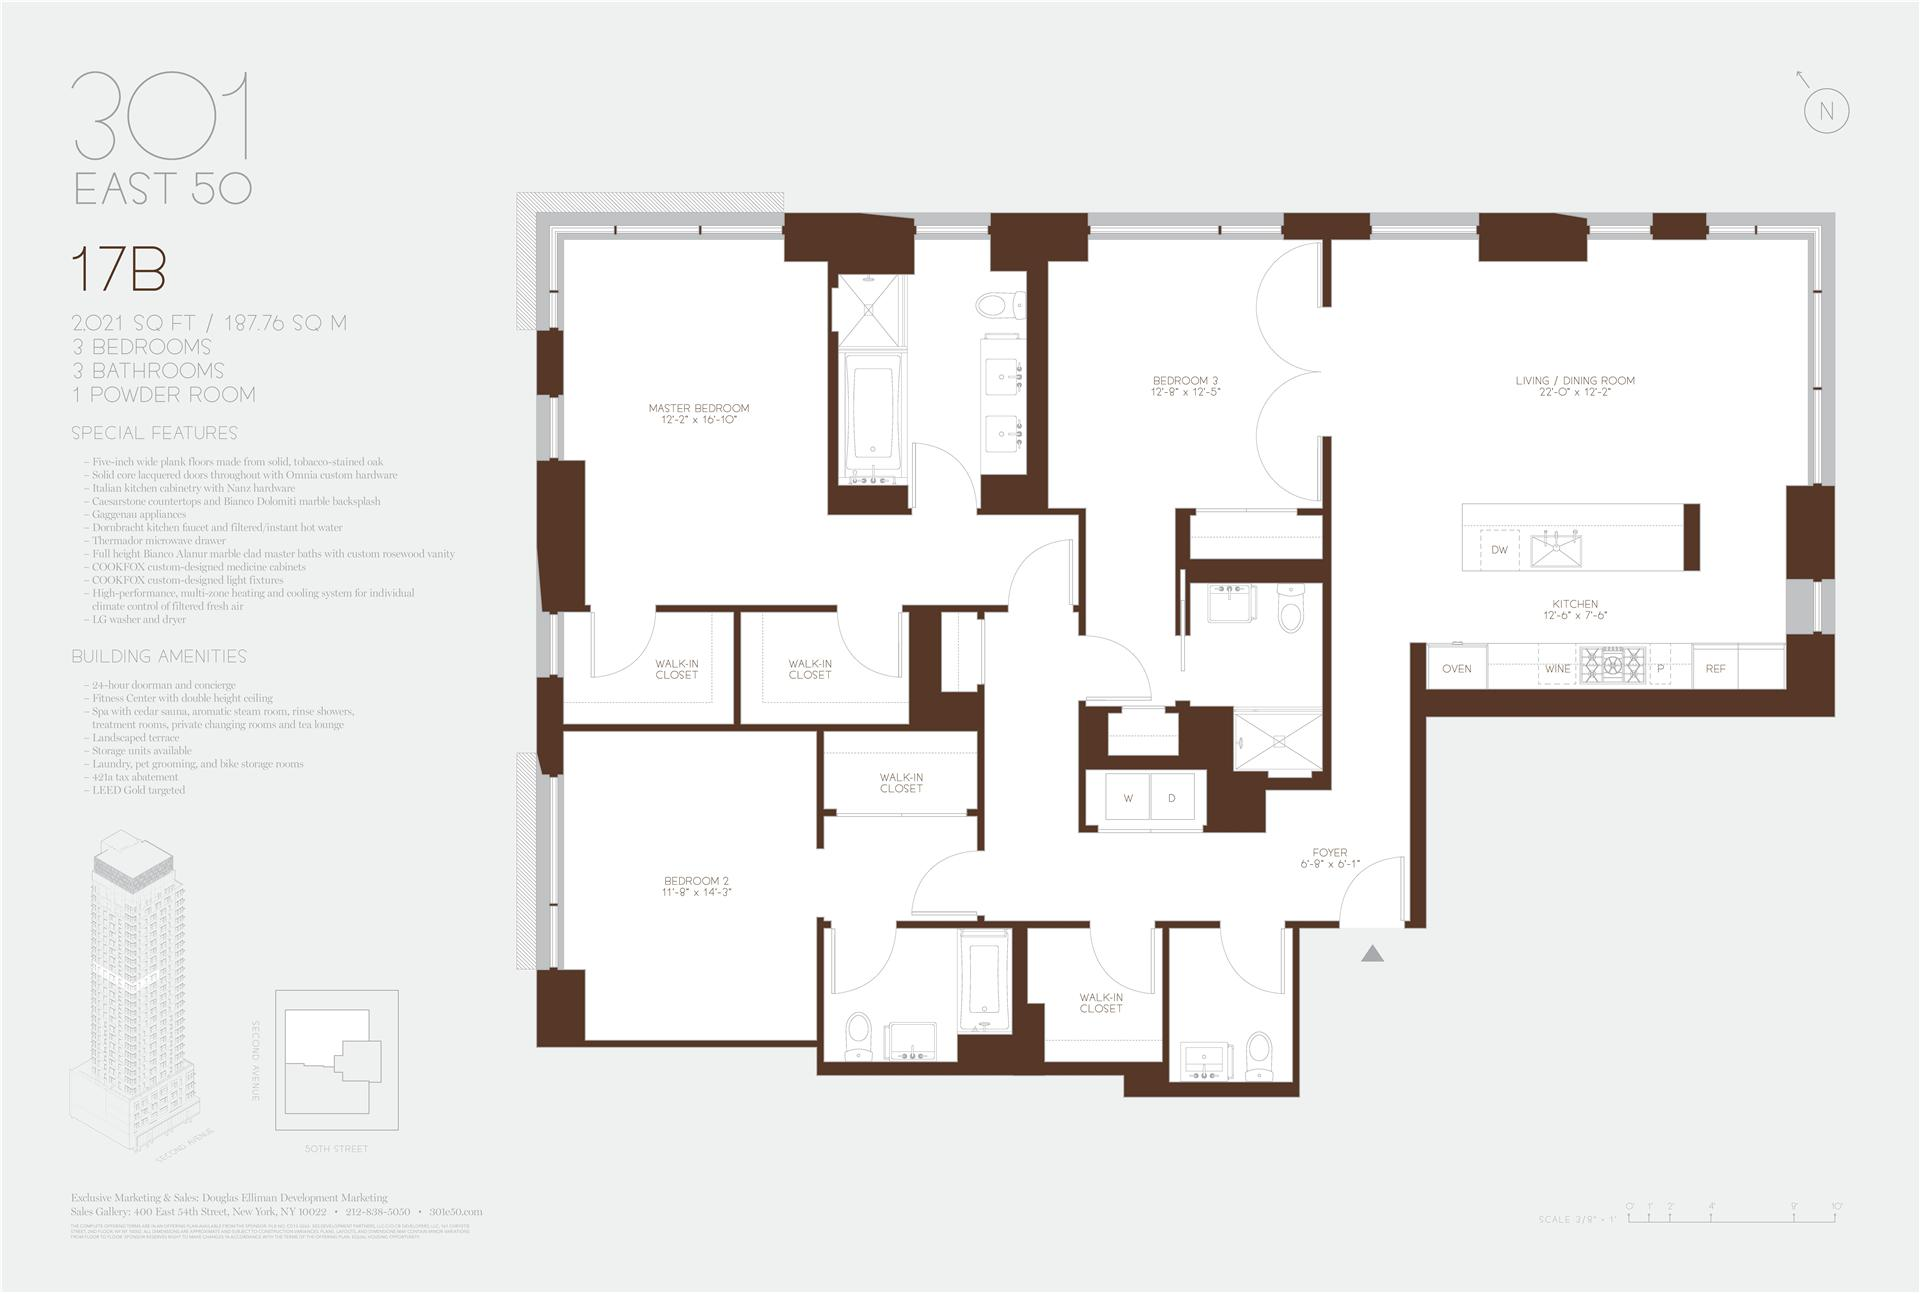 Floor plan of 301 East 50th St, 17B - Turtle Bay, New York